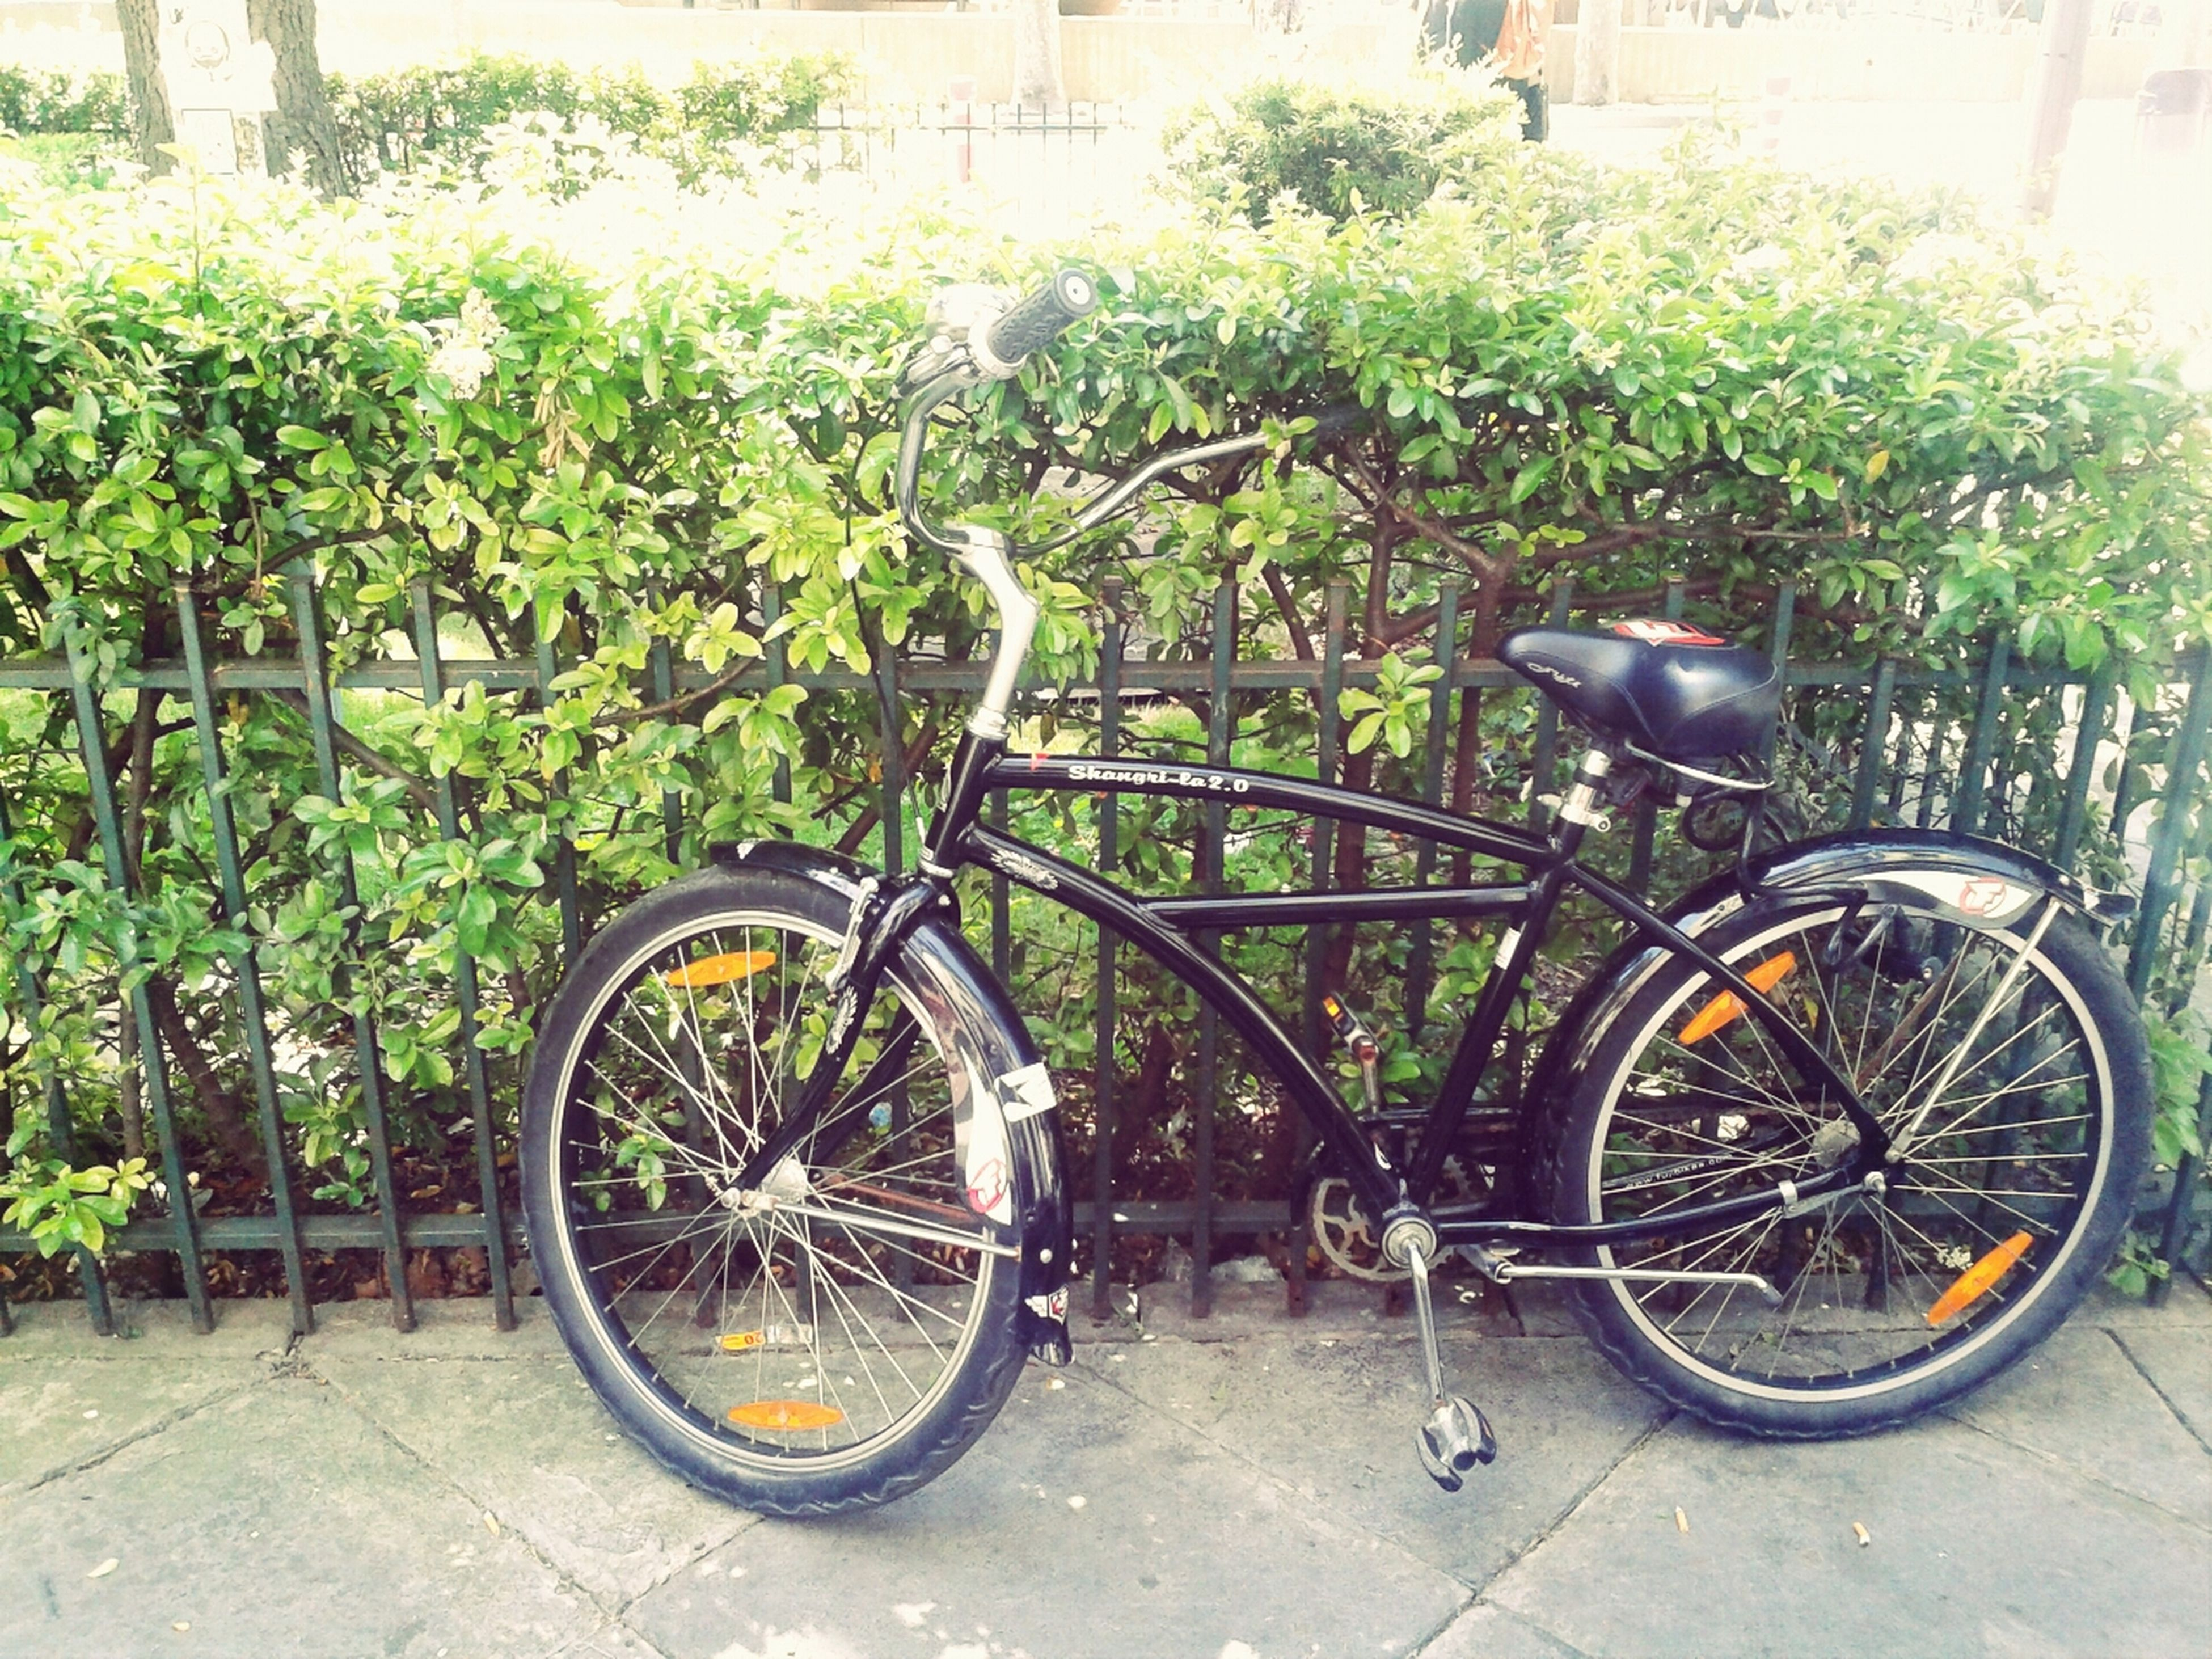 bicycle, transportation, mode of transport, land vehicle, stationary, parking, parked, wheel, leaning, cycle, day, outdoors, no people, plant, bicycle basket, travel, street, sidewalk, tire, sunlight